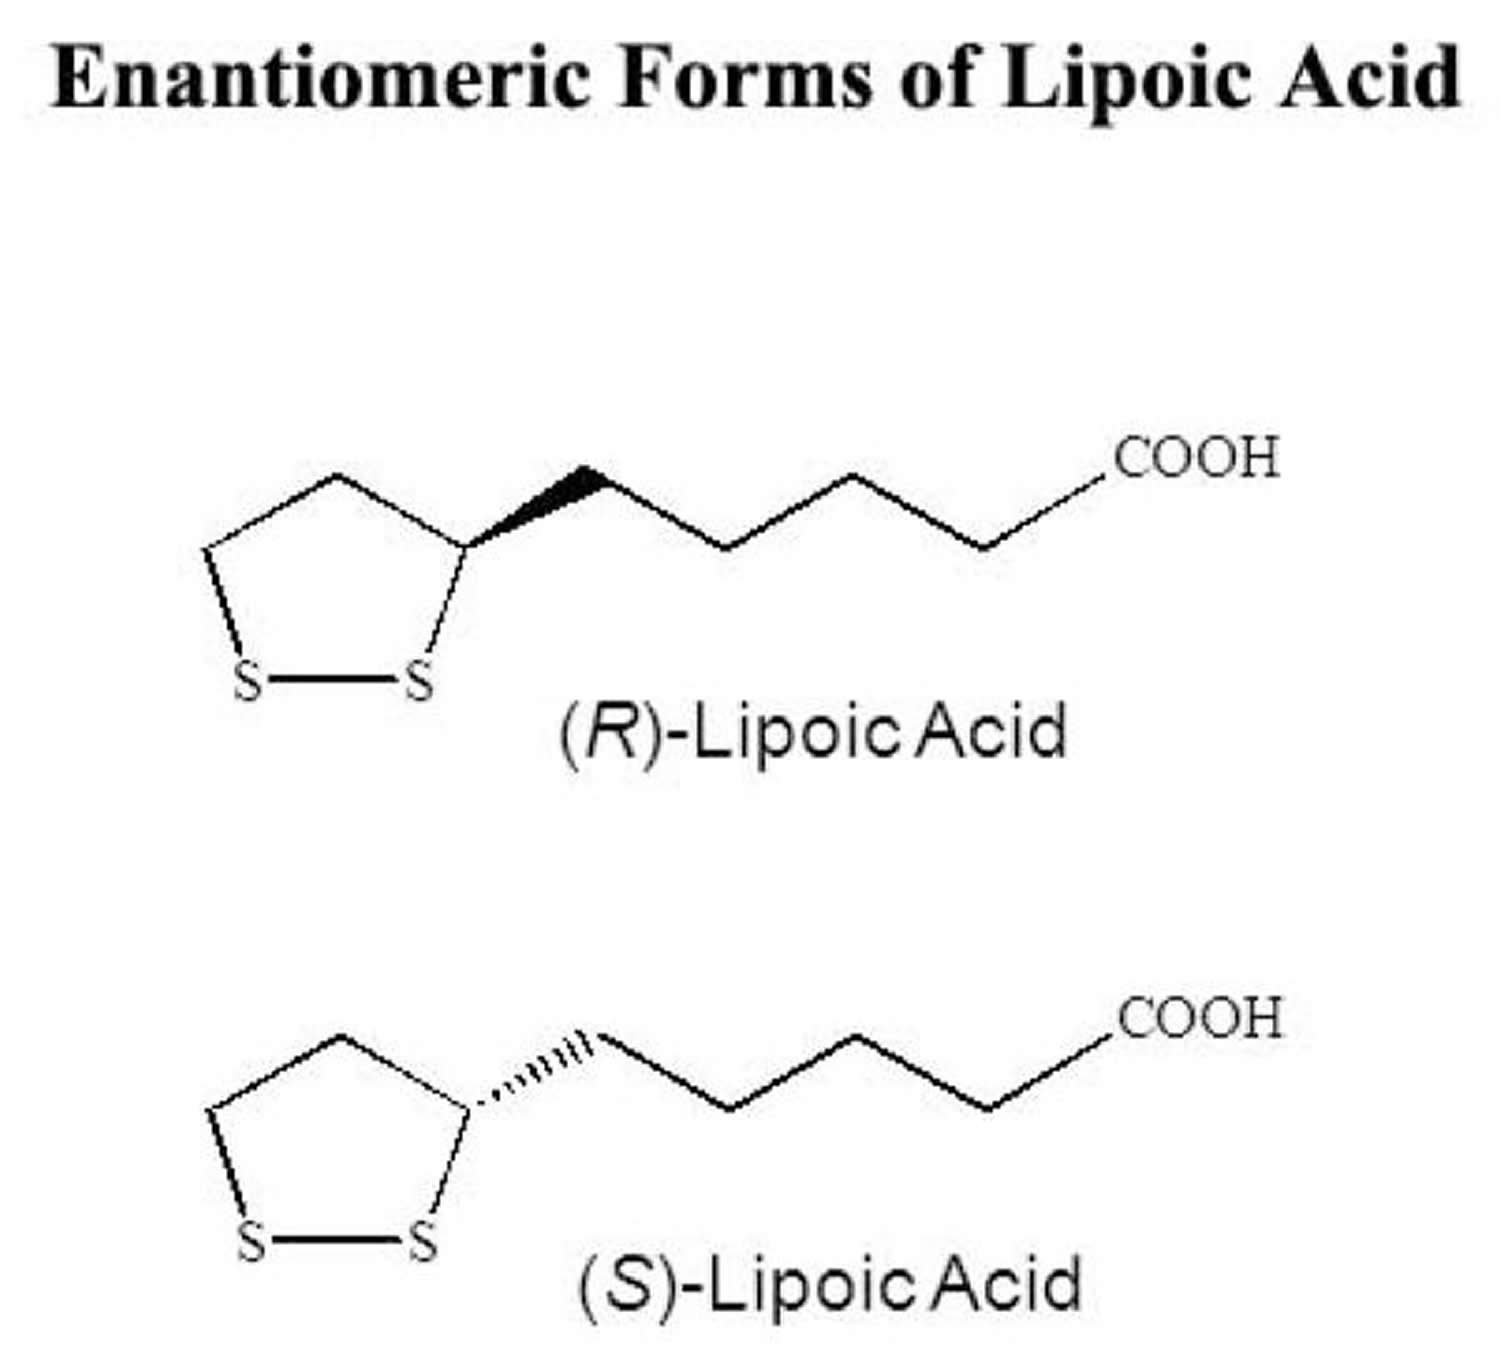 Alpha lipoic acid R and S enantiomers